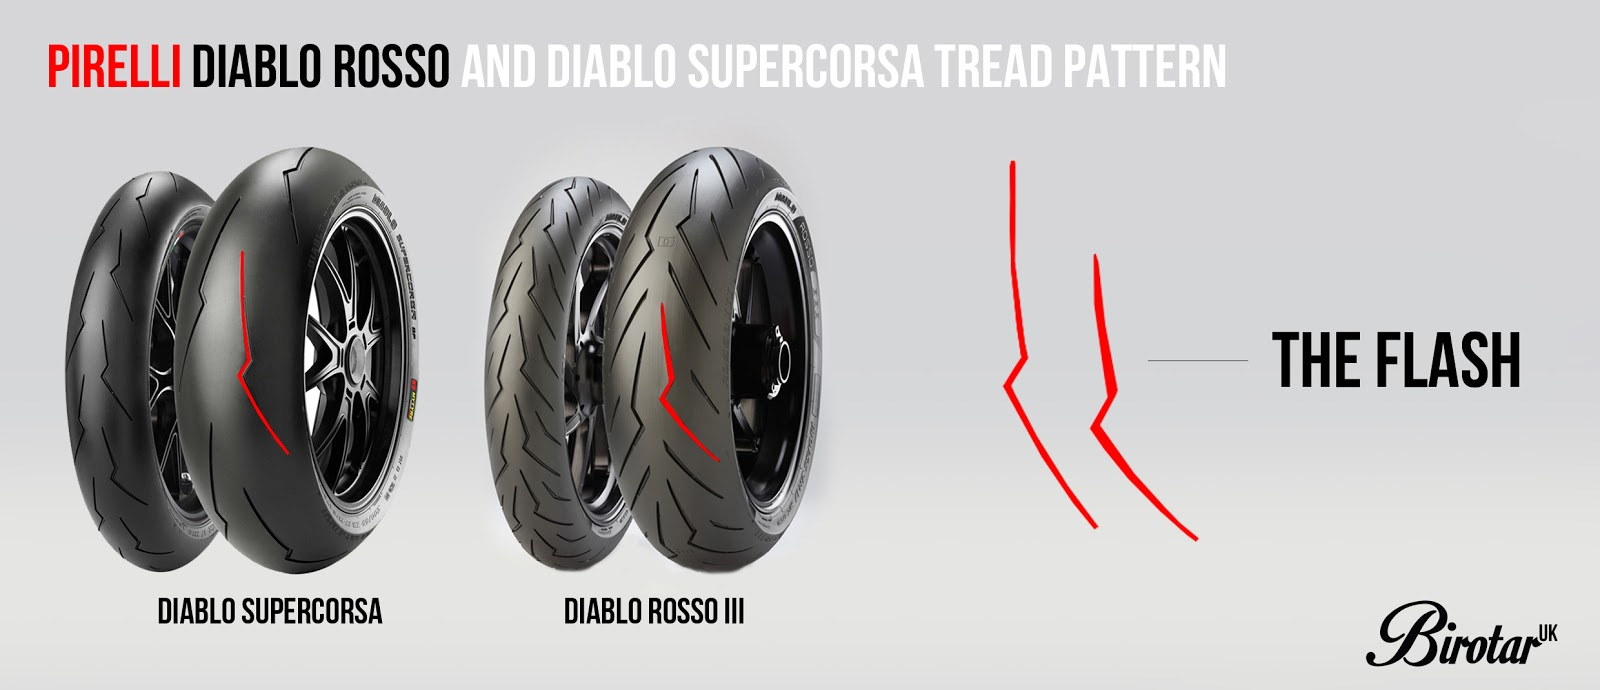 birotaruk pirelli diablo rosso iii tyre review. Black Bedroom Furniture Sets. Home Design Ideas